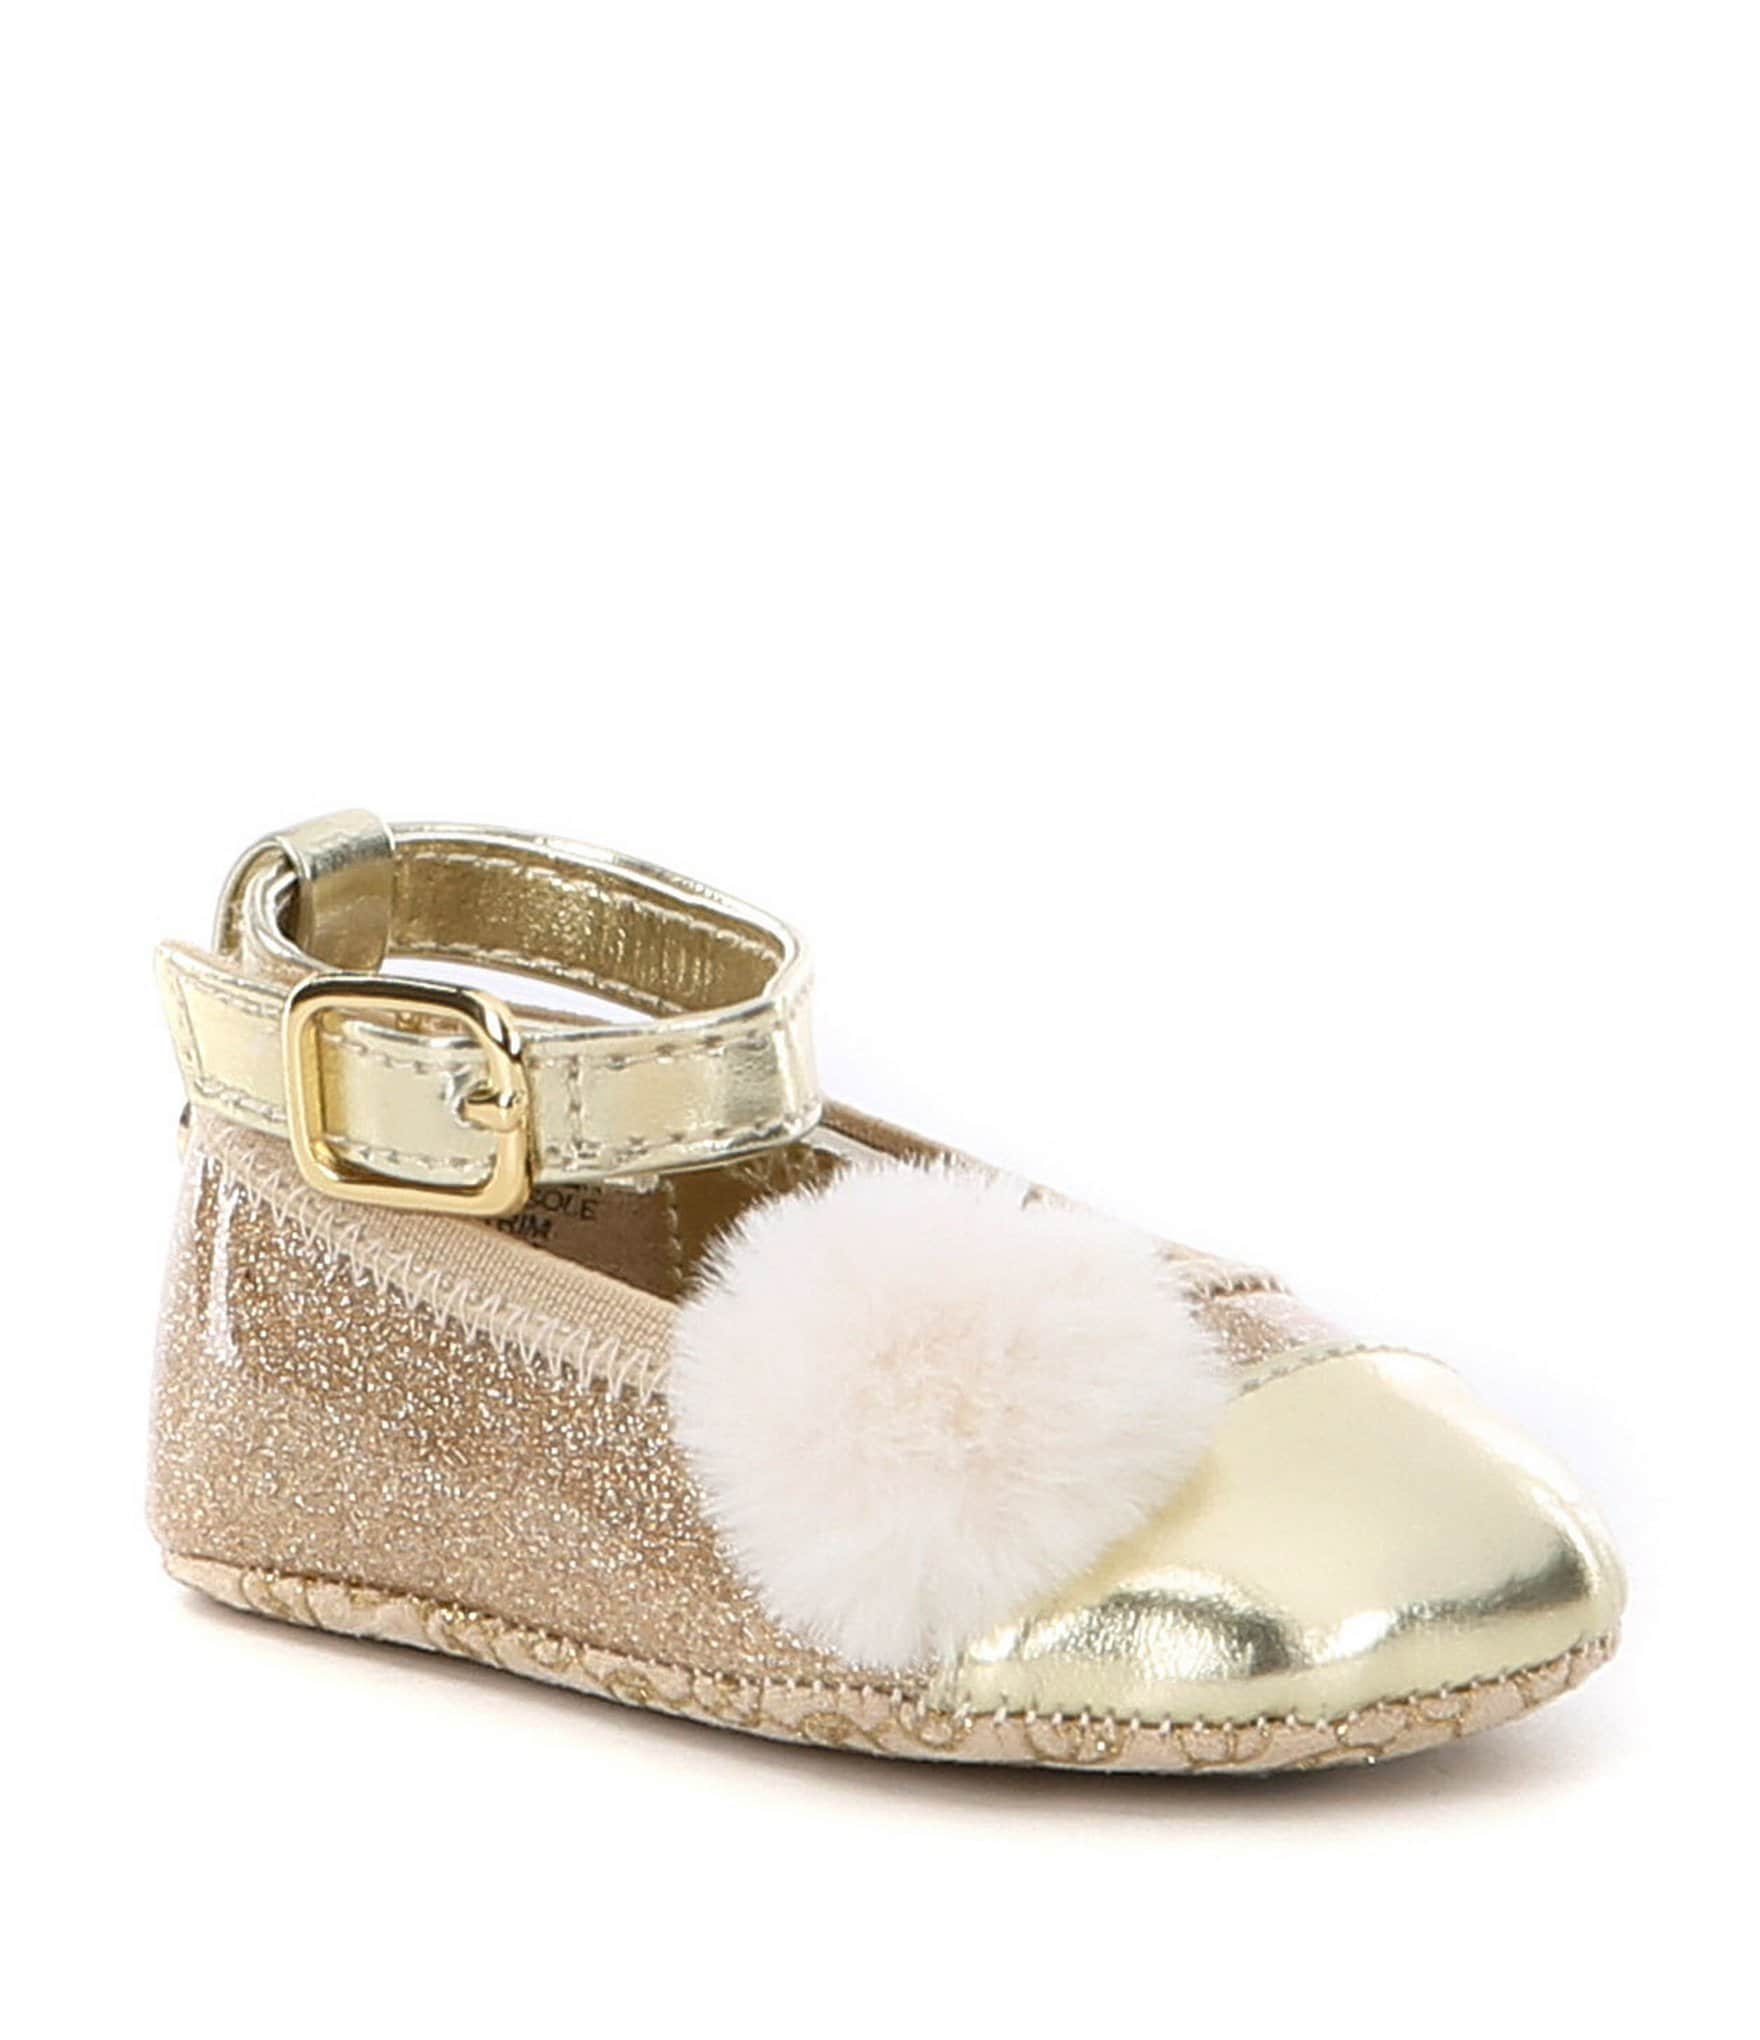 MICHAEL Michael Kors Baby Girls Lucy Ballerina Crib Shoes